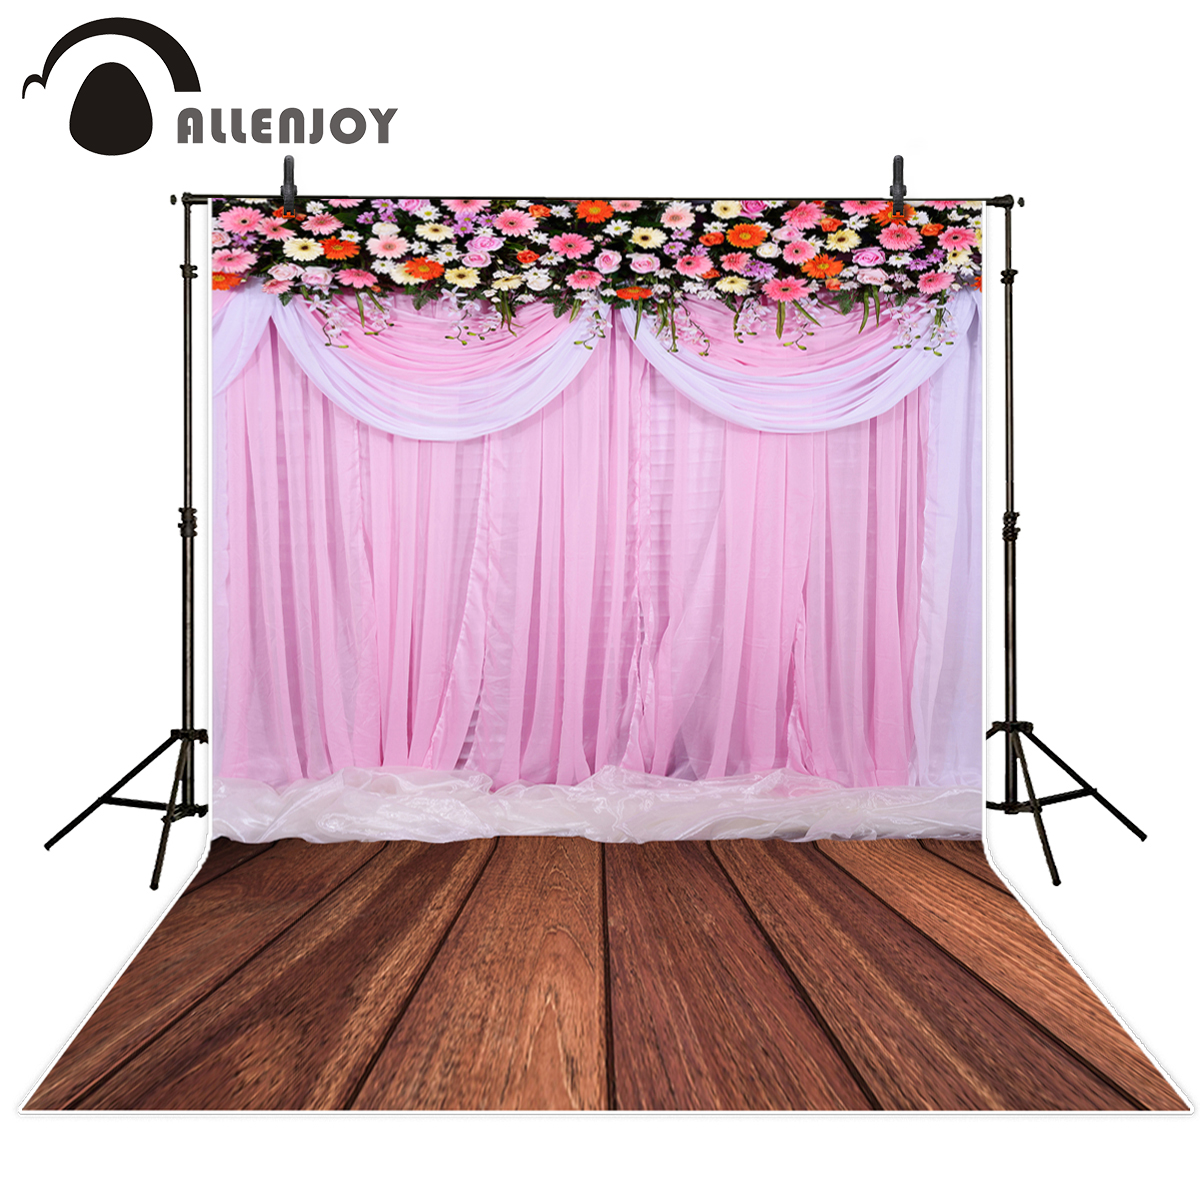 Allenjoy photography backdrops pink flower wood wedding yarn romantic photo background vinyl Fund for newborn photography studio allenjoy photography backdrops love pink romantic background photography wedding backdrop for valentine s day